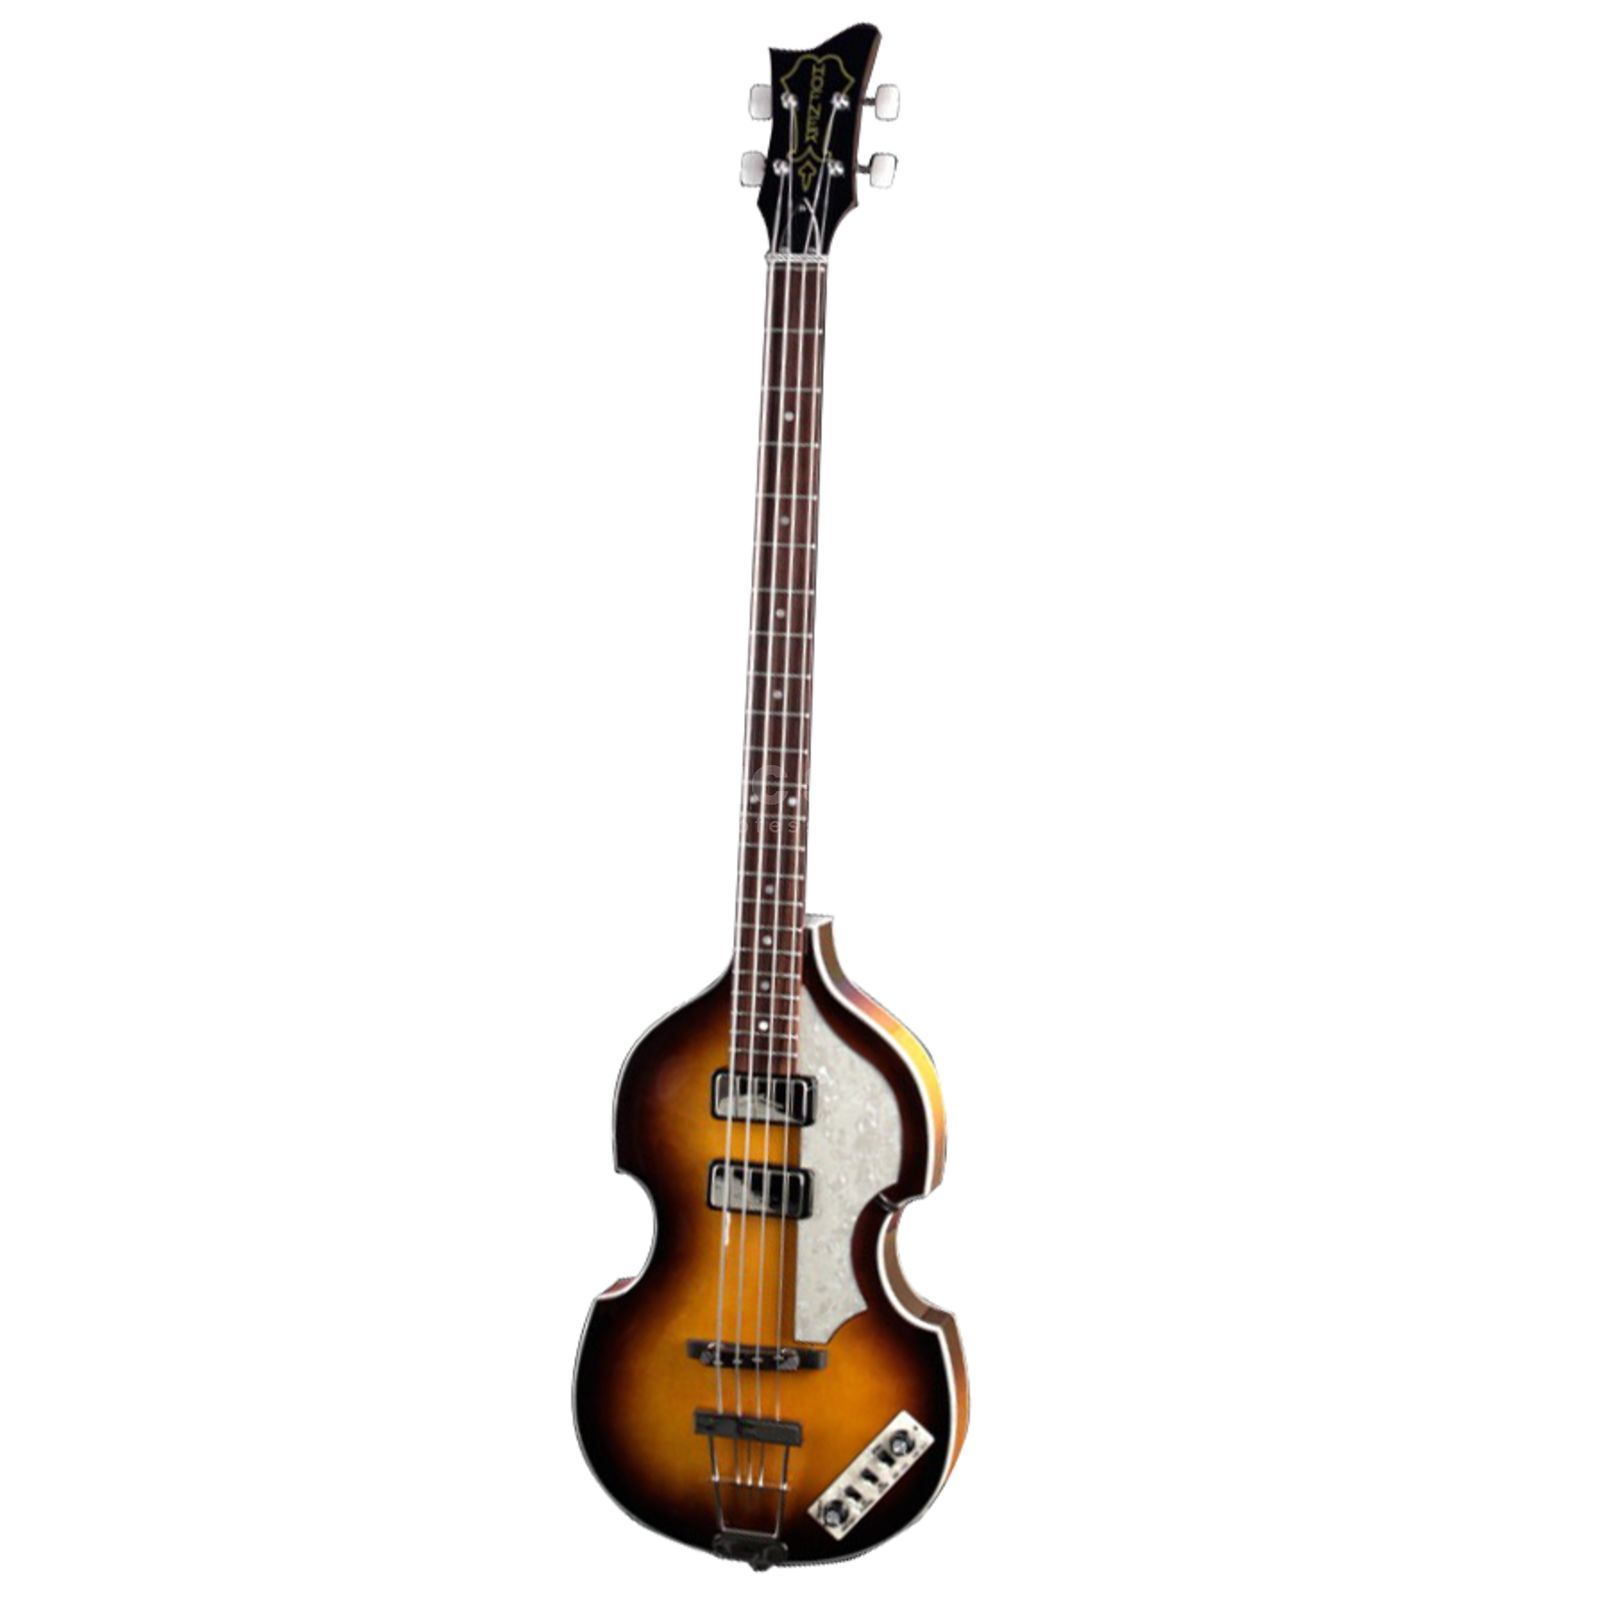 Höfner Contemp. Violin Bass 500/1-CV Sunburst B-Stock Productafbeelding